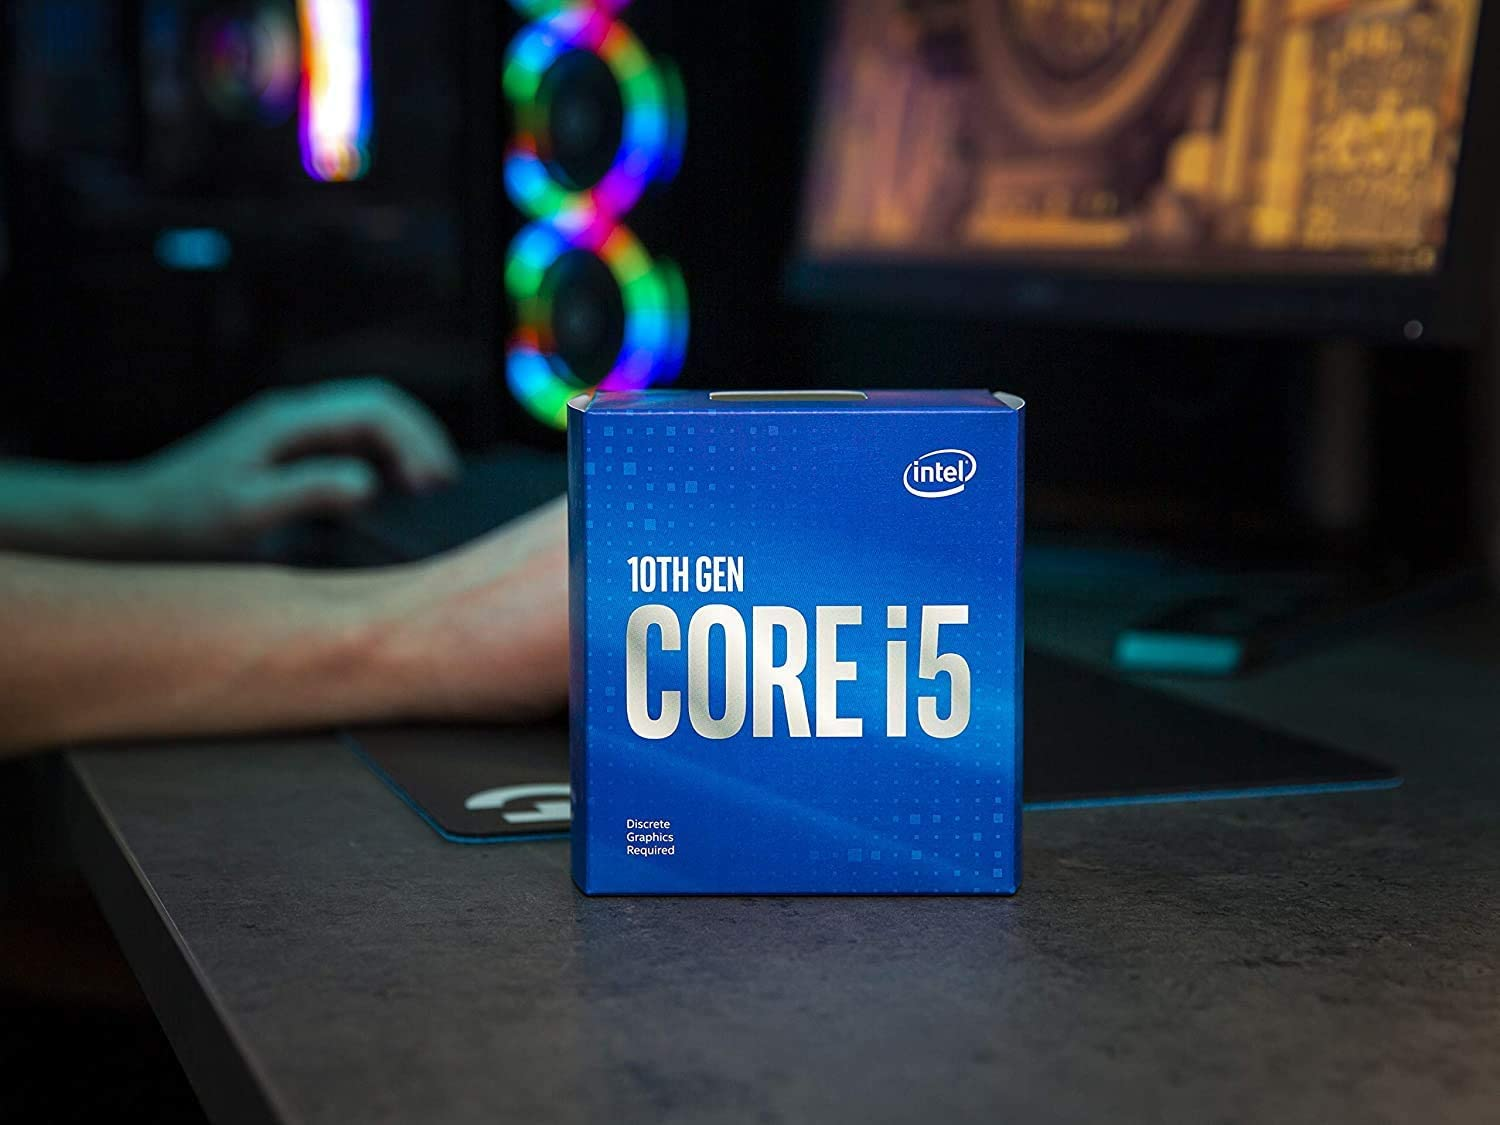 PROCESSORE I5-10400 2,9GHZ 12MB LGA1200